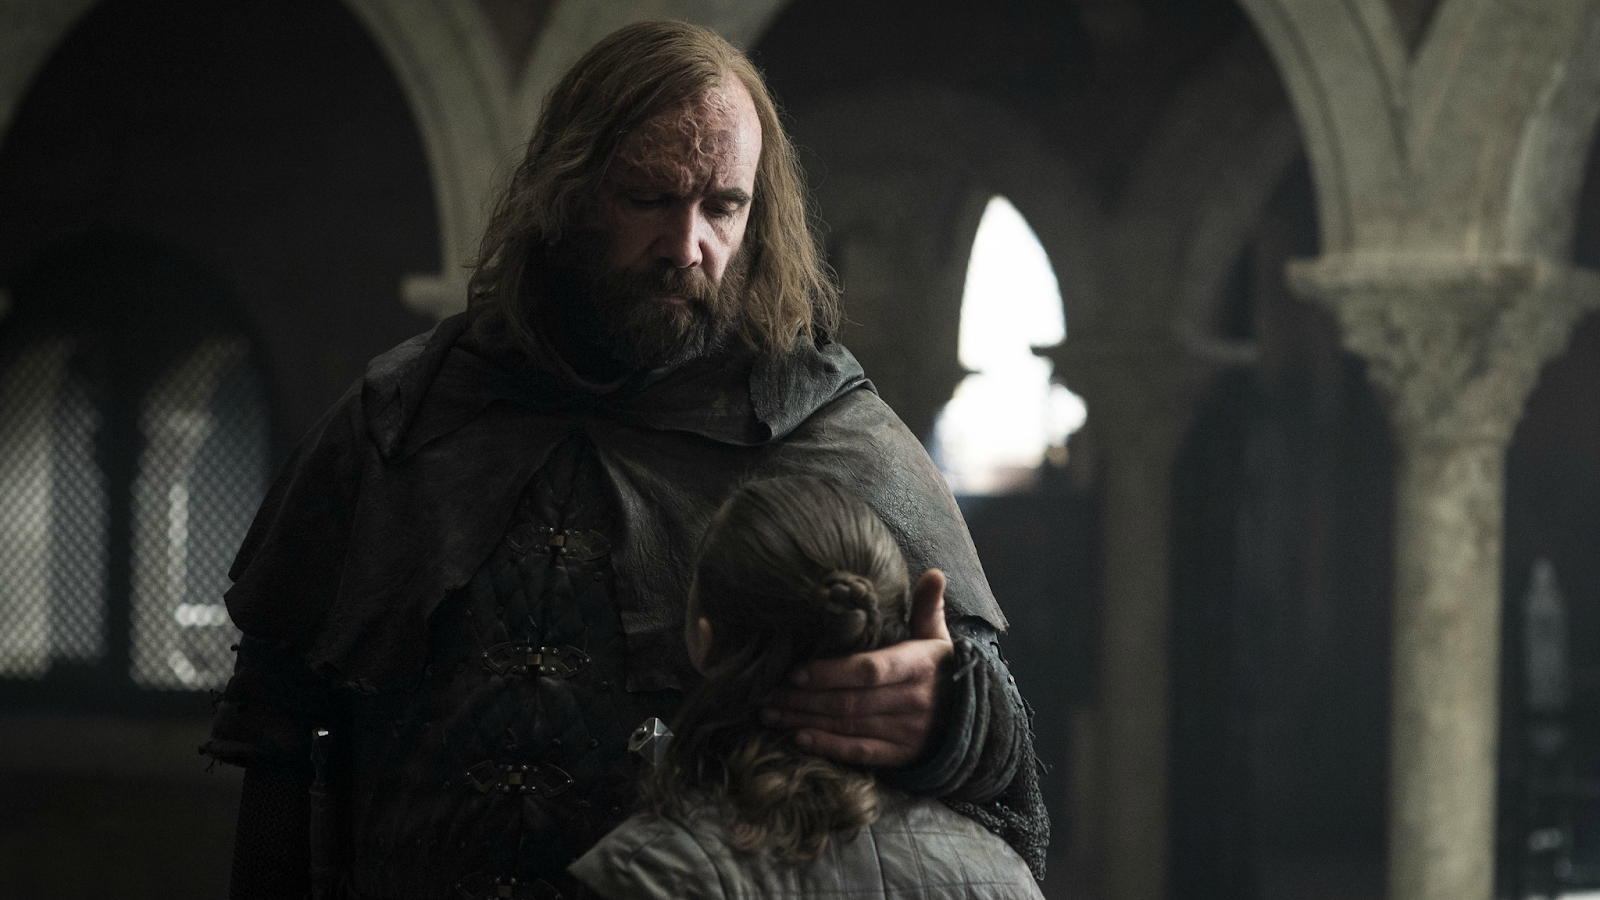 Eclectic Pop: Let's Discuss: Being An Absolute Wreck Over The Penultimate 'Game Of Thrones' Episode